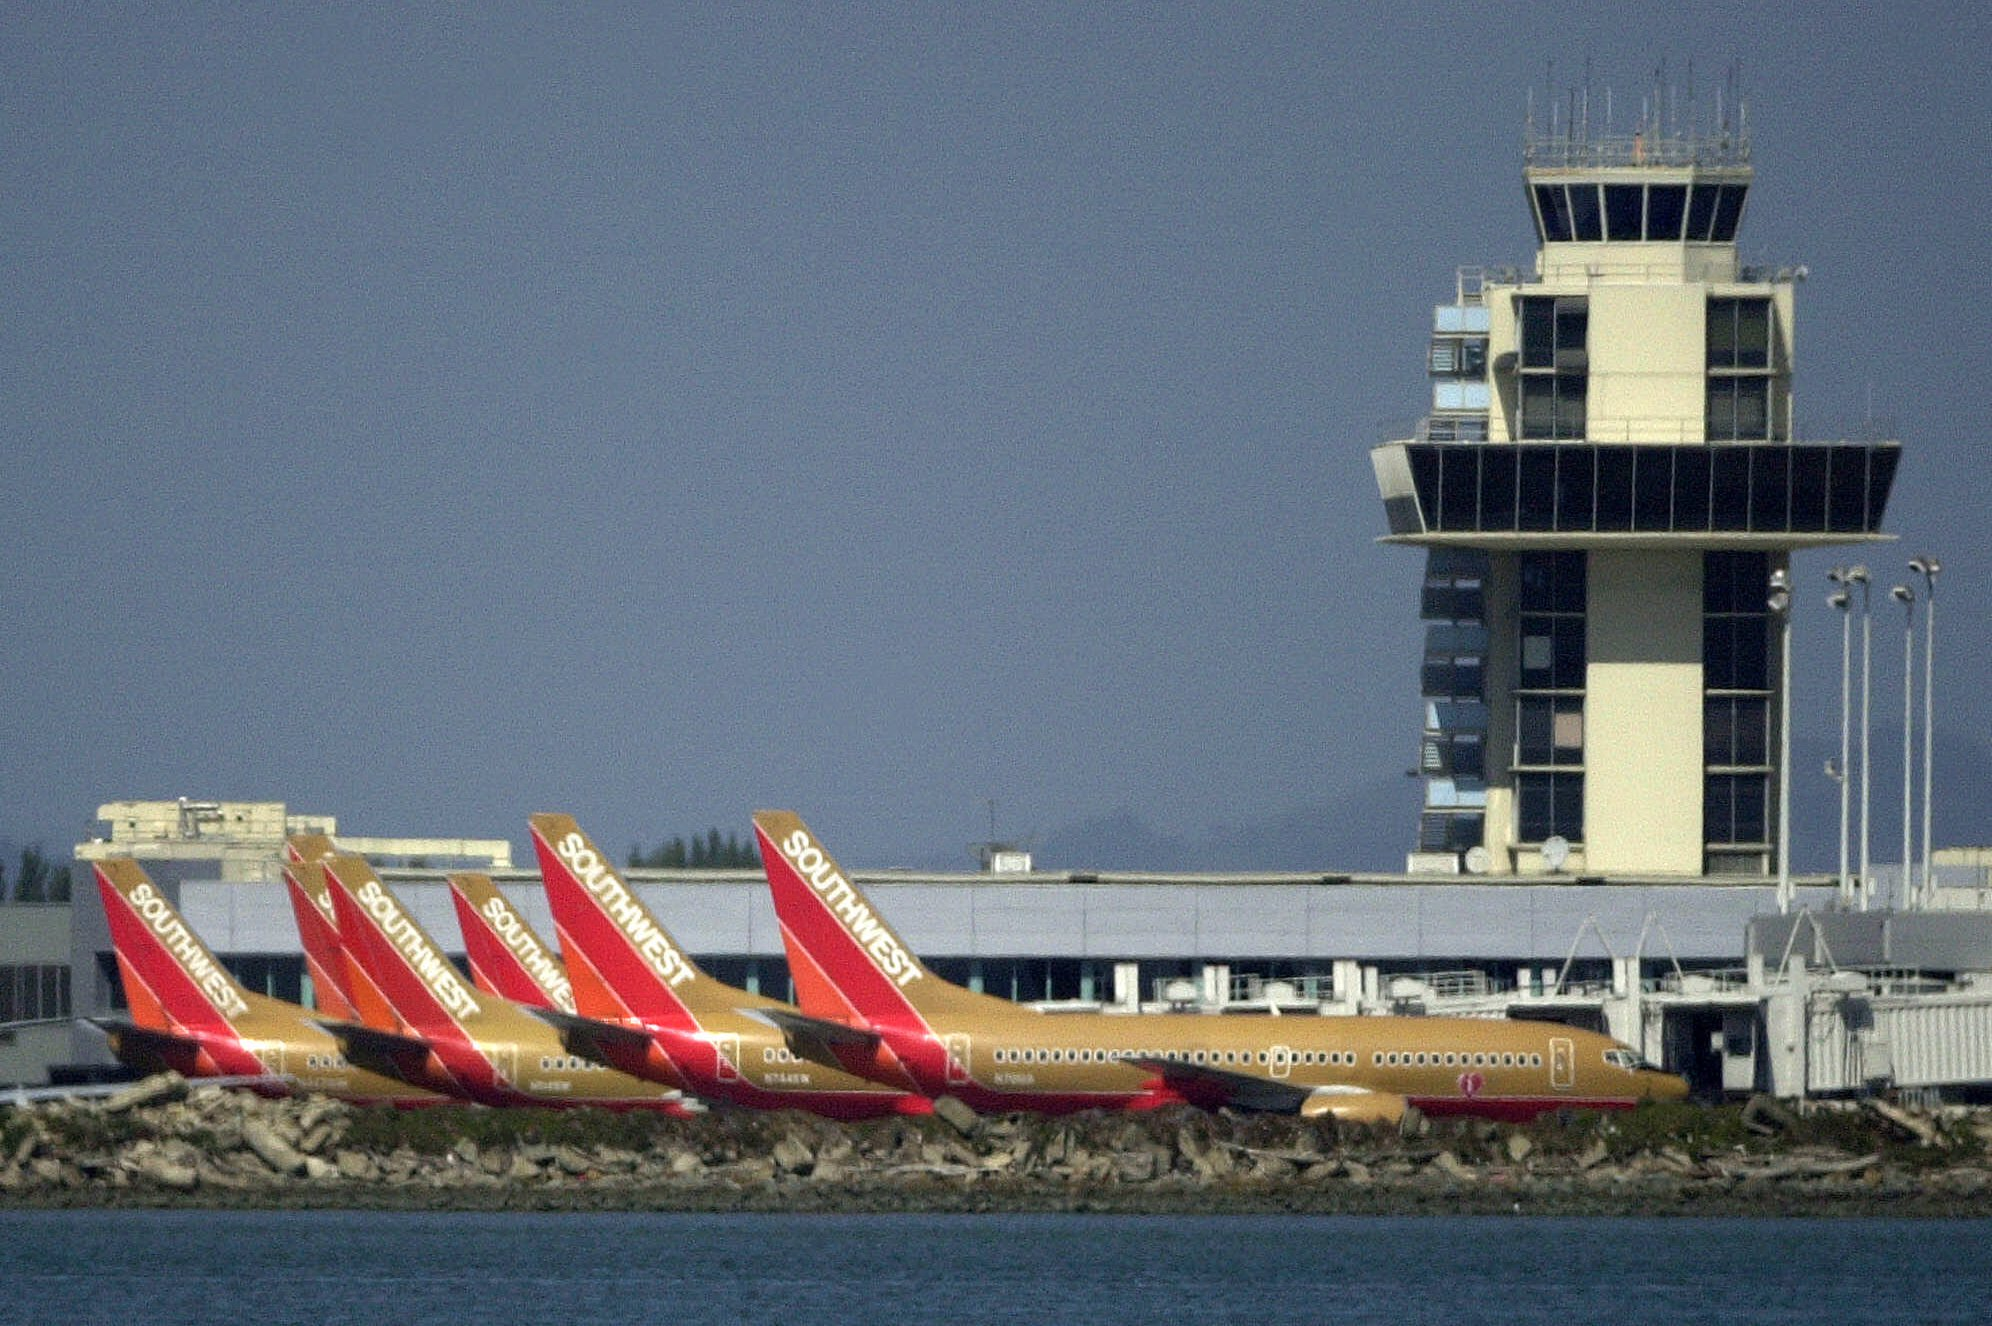 Southwest planes are seen parked beside the Oakland International Airport tower on Sept. 11, 2001, in Oakland, Calif.